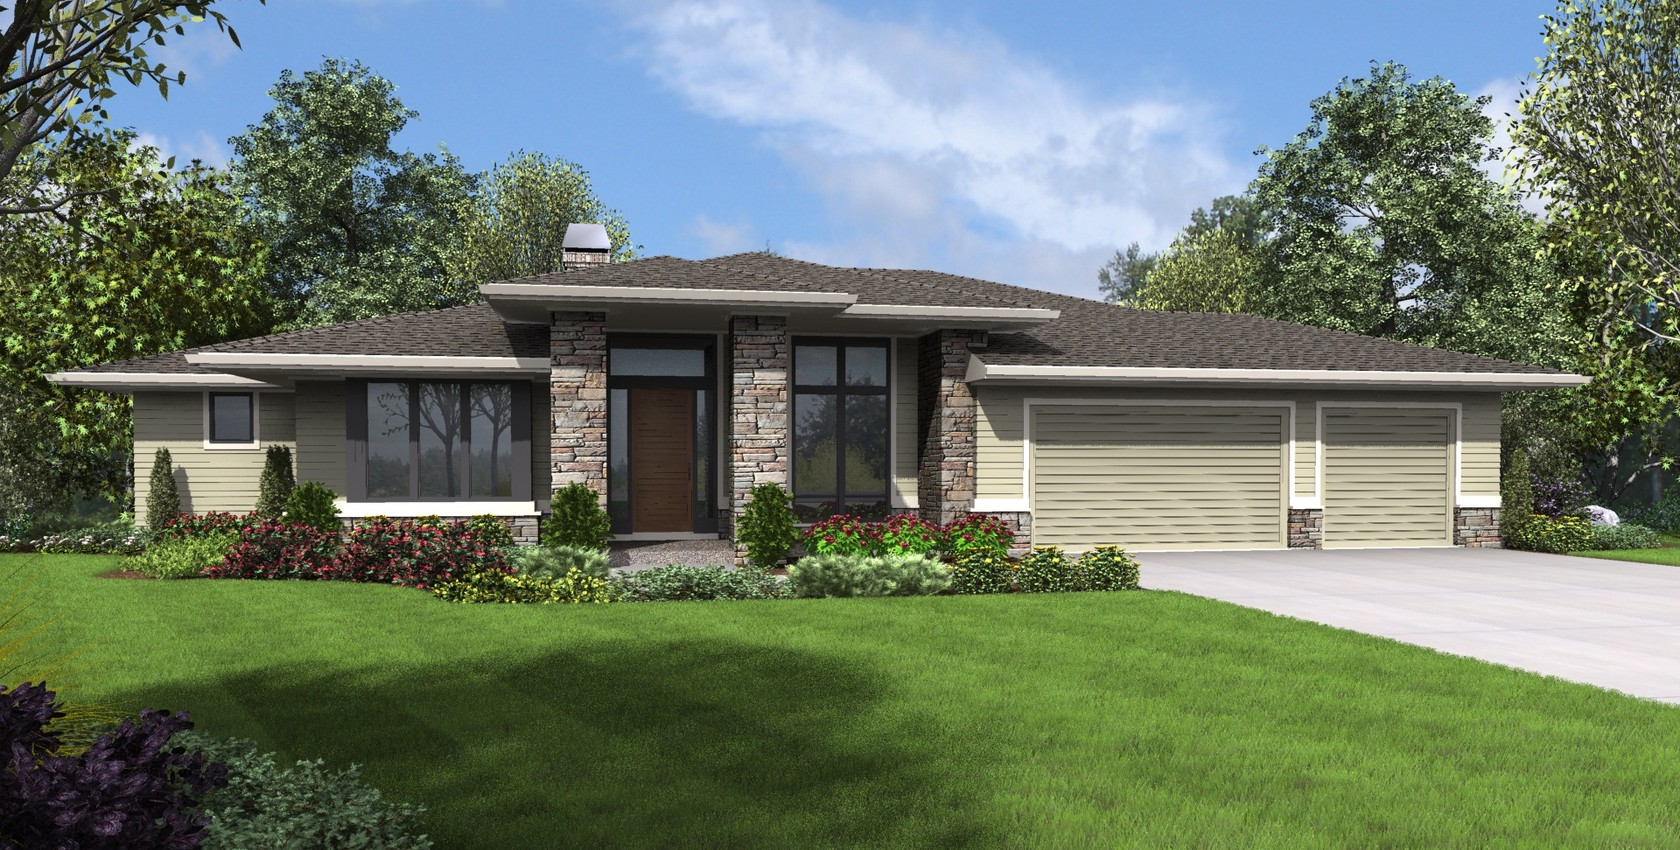 Image for Trenton-Upscale Home with Room for the Future-8472